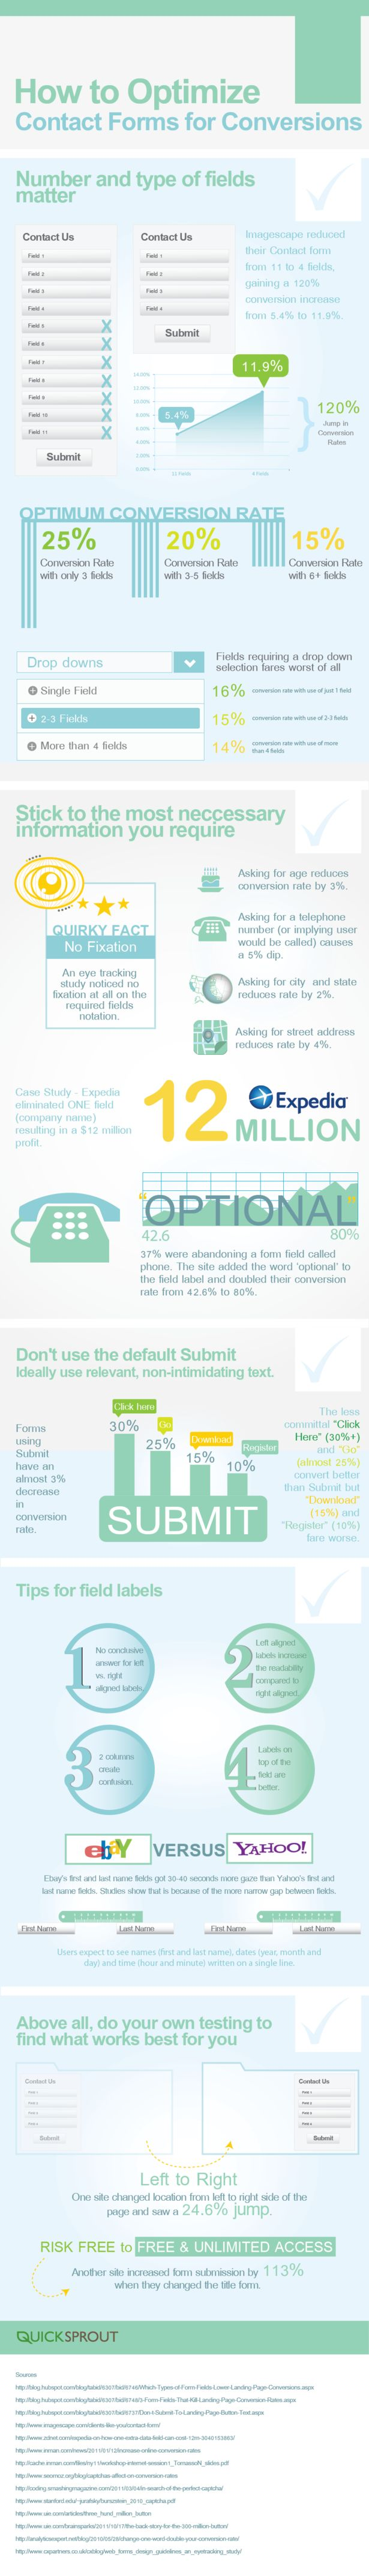 Folks over at @quicksprout produced this Infographic: How to optimize contact forms for conversions #ecommerce http://econsultancy.com/us/blog/62659-this-week-s-finest-digital-marketing-infographic-2?utm_campaign=BrettCarneiroSentMe